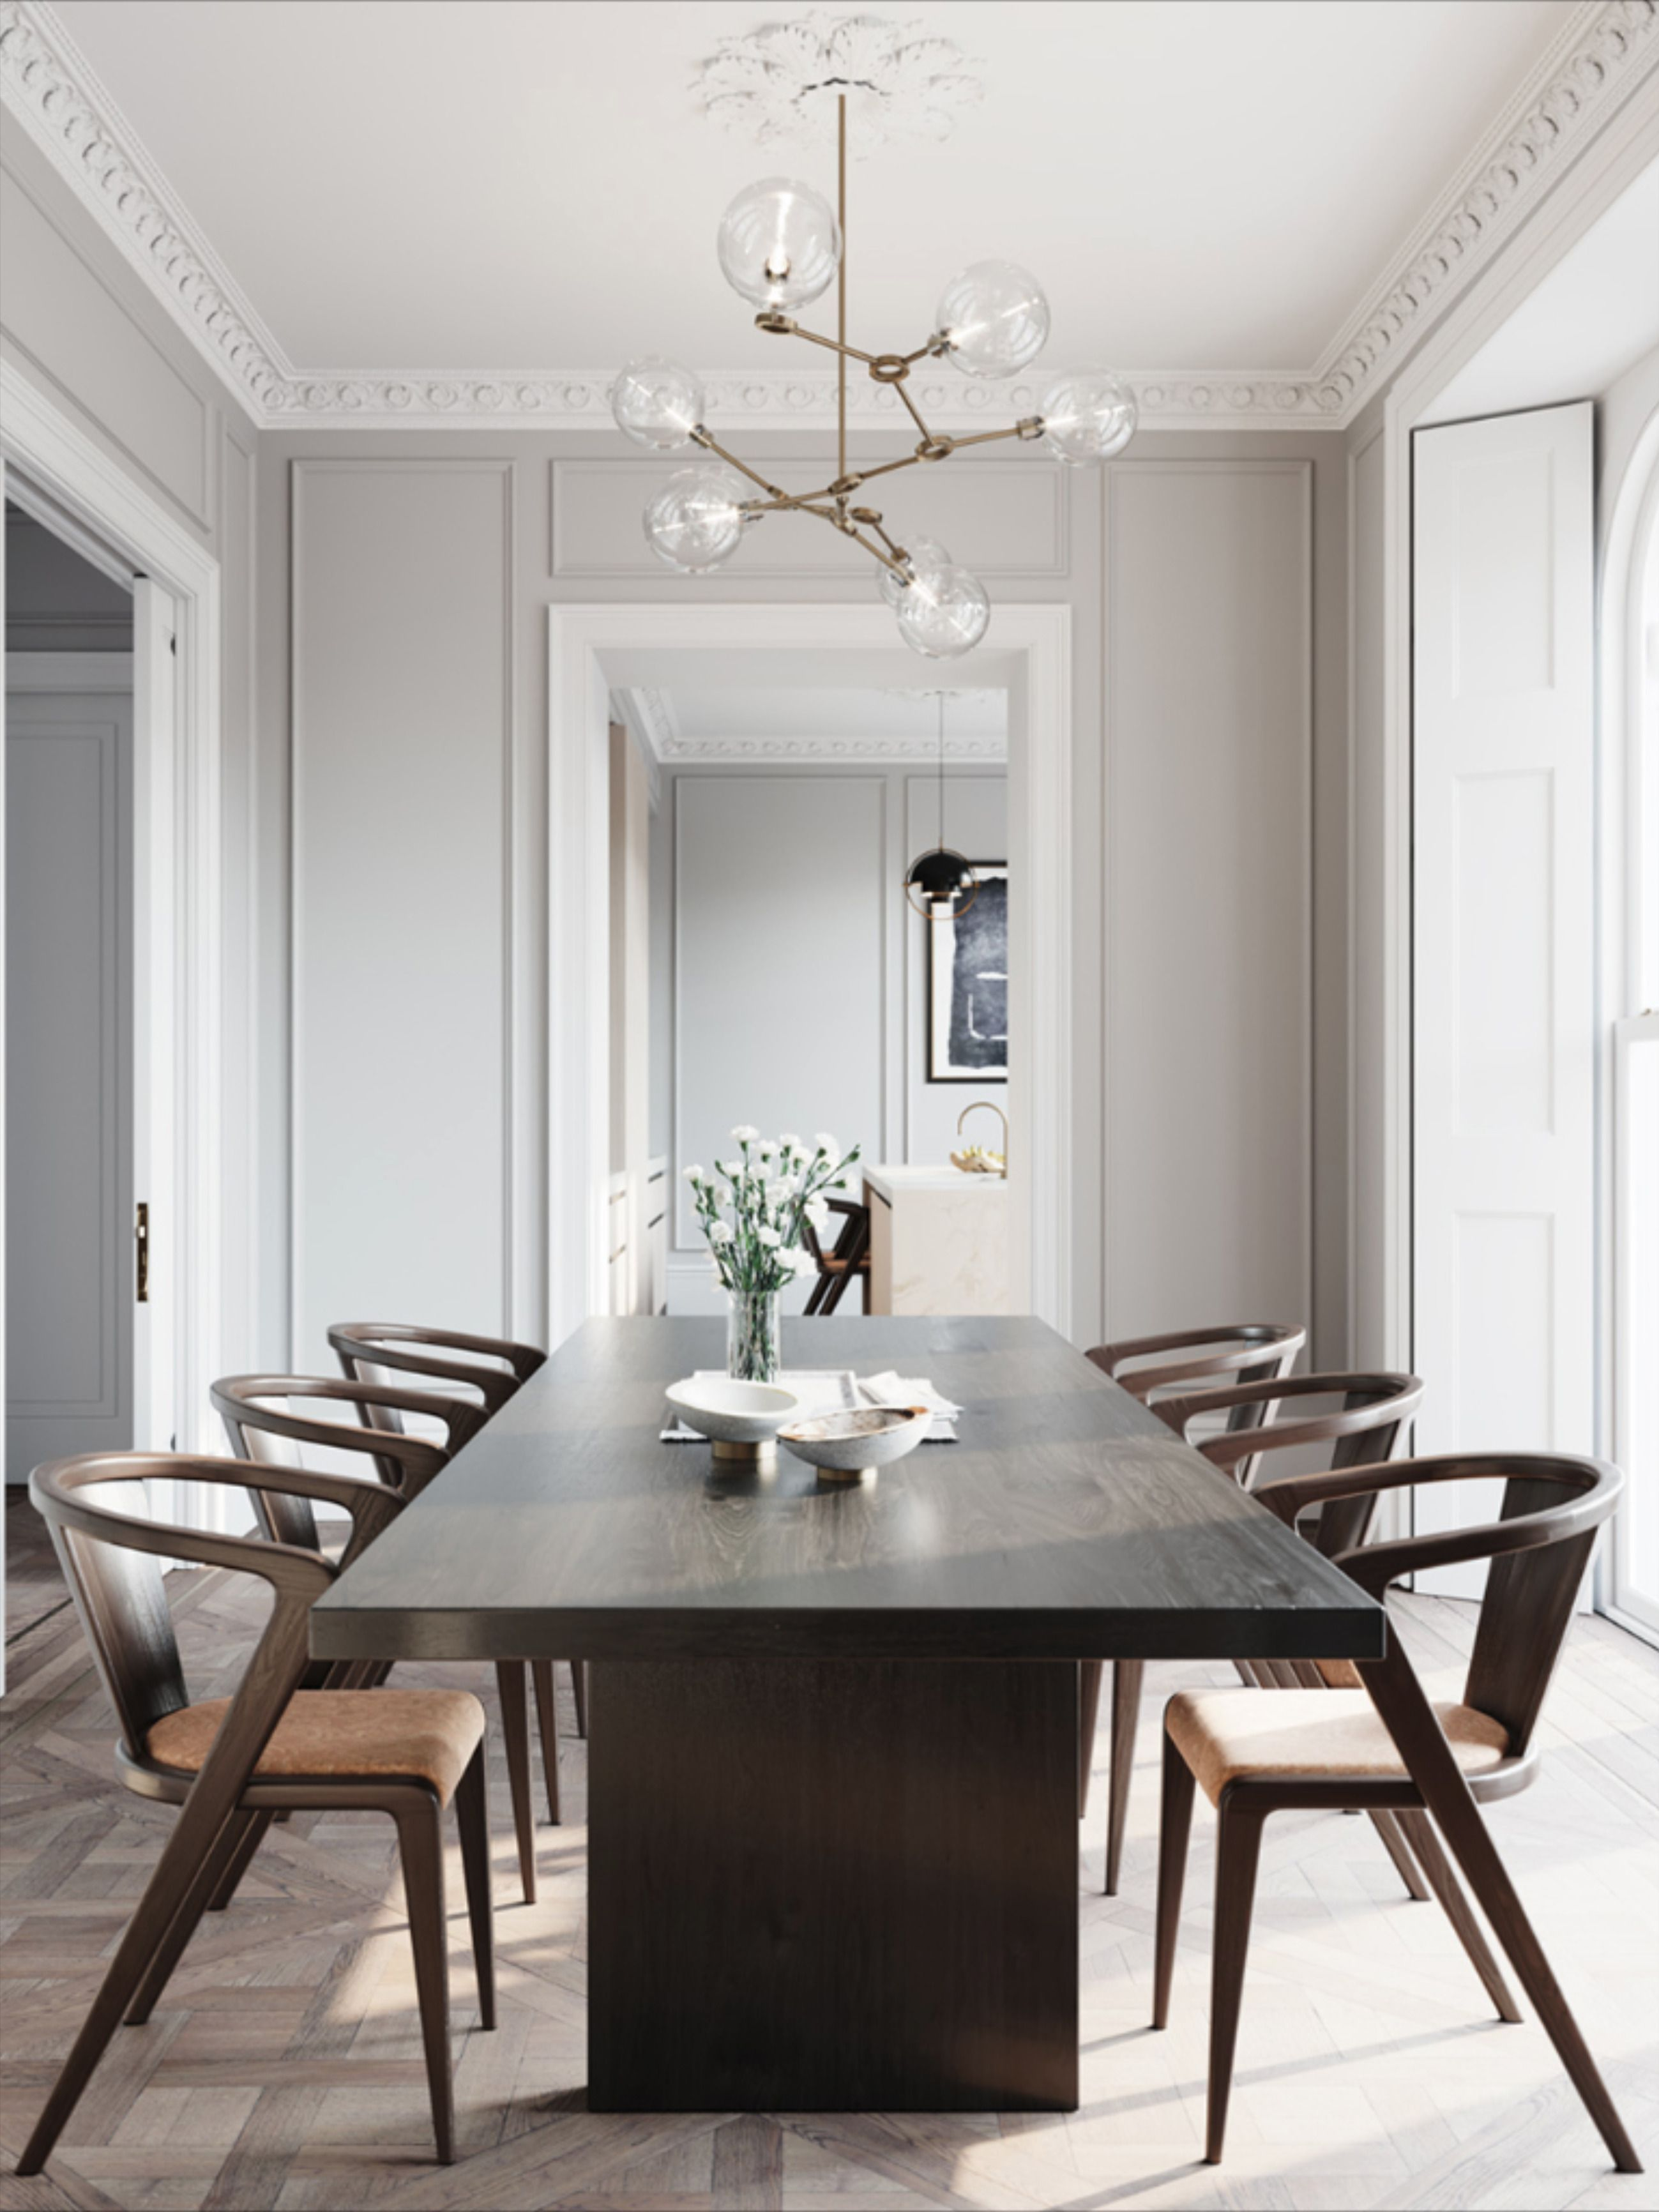 50 Incredible Home Decor Ideas For A Luxury Dining Room In 2021 Classic Dining Room Dining Room Design Modern Modern Dining Room